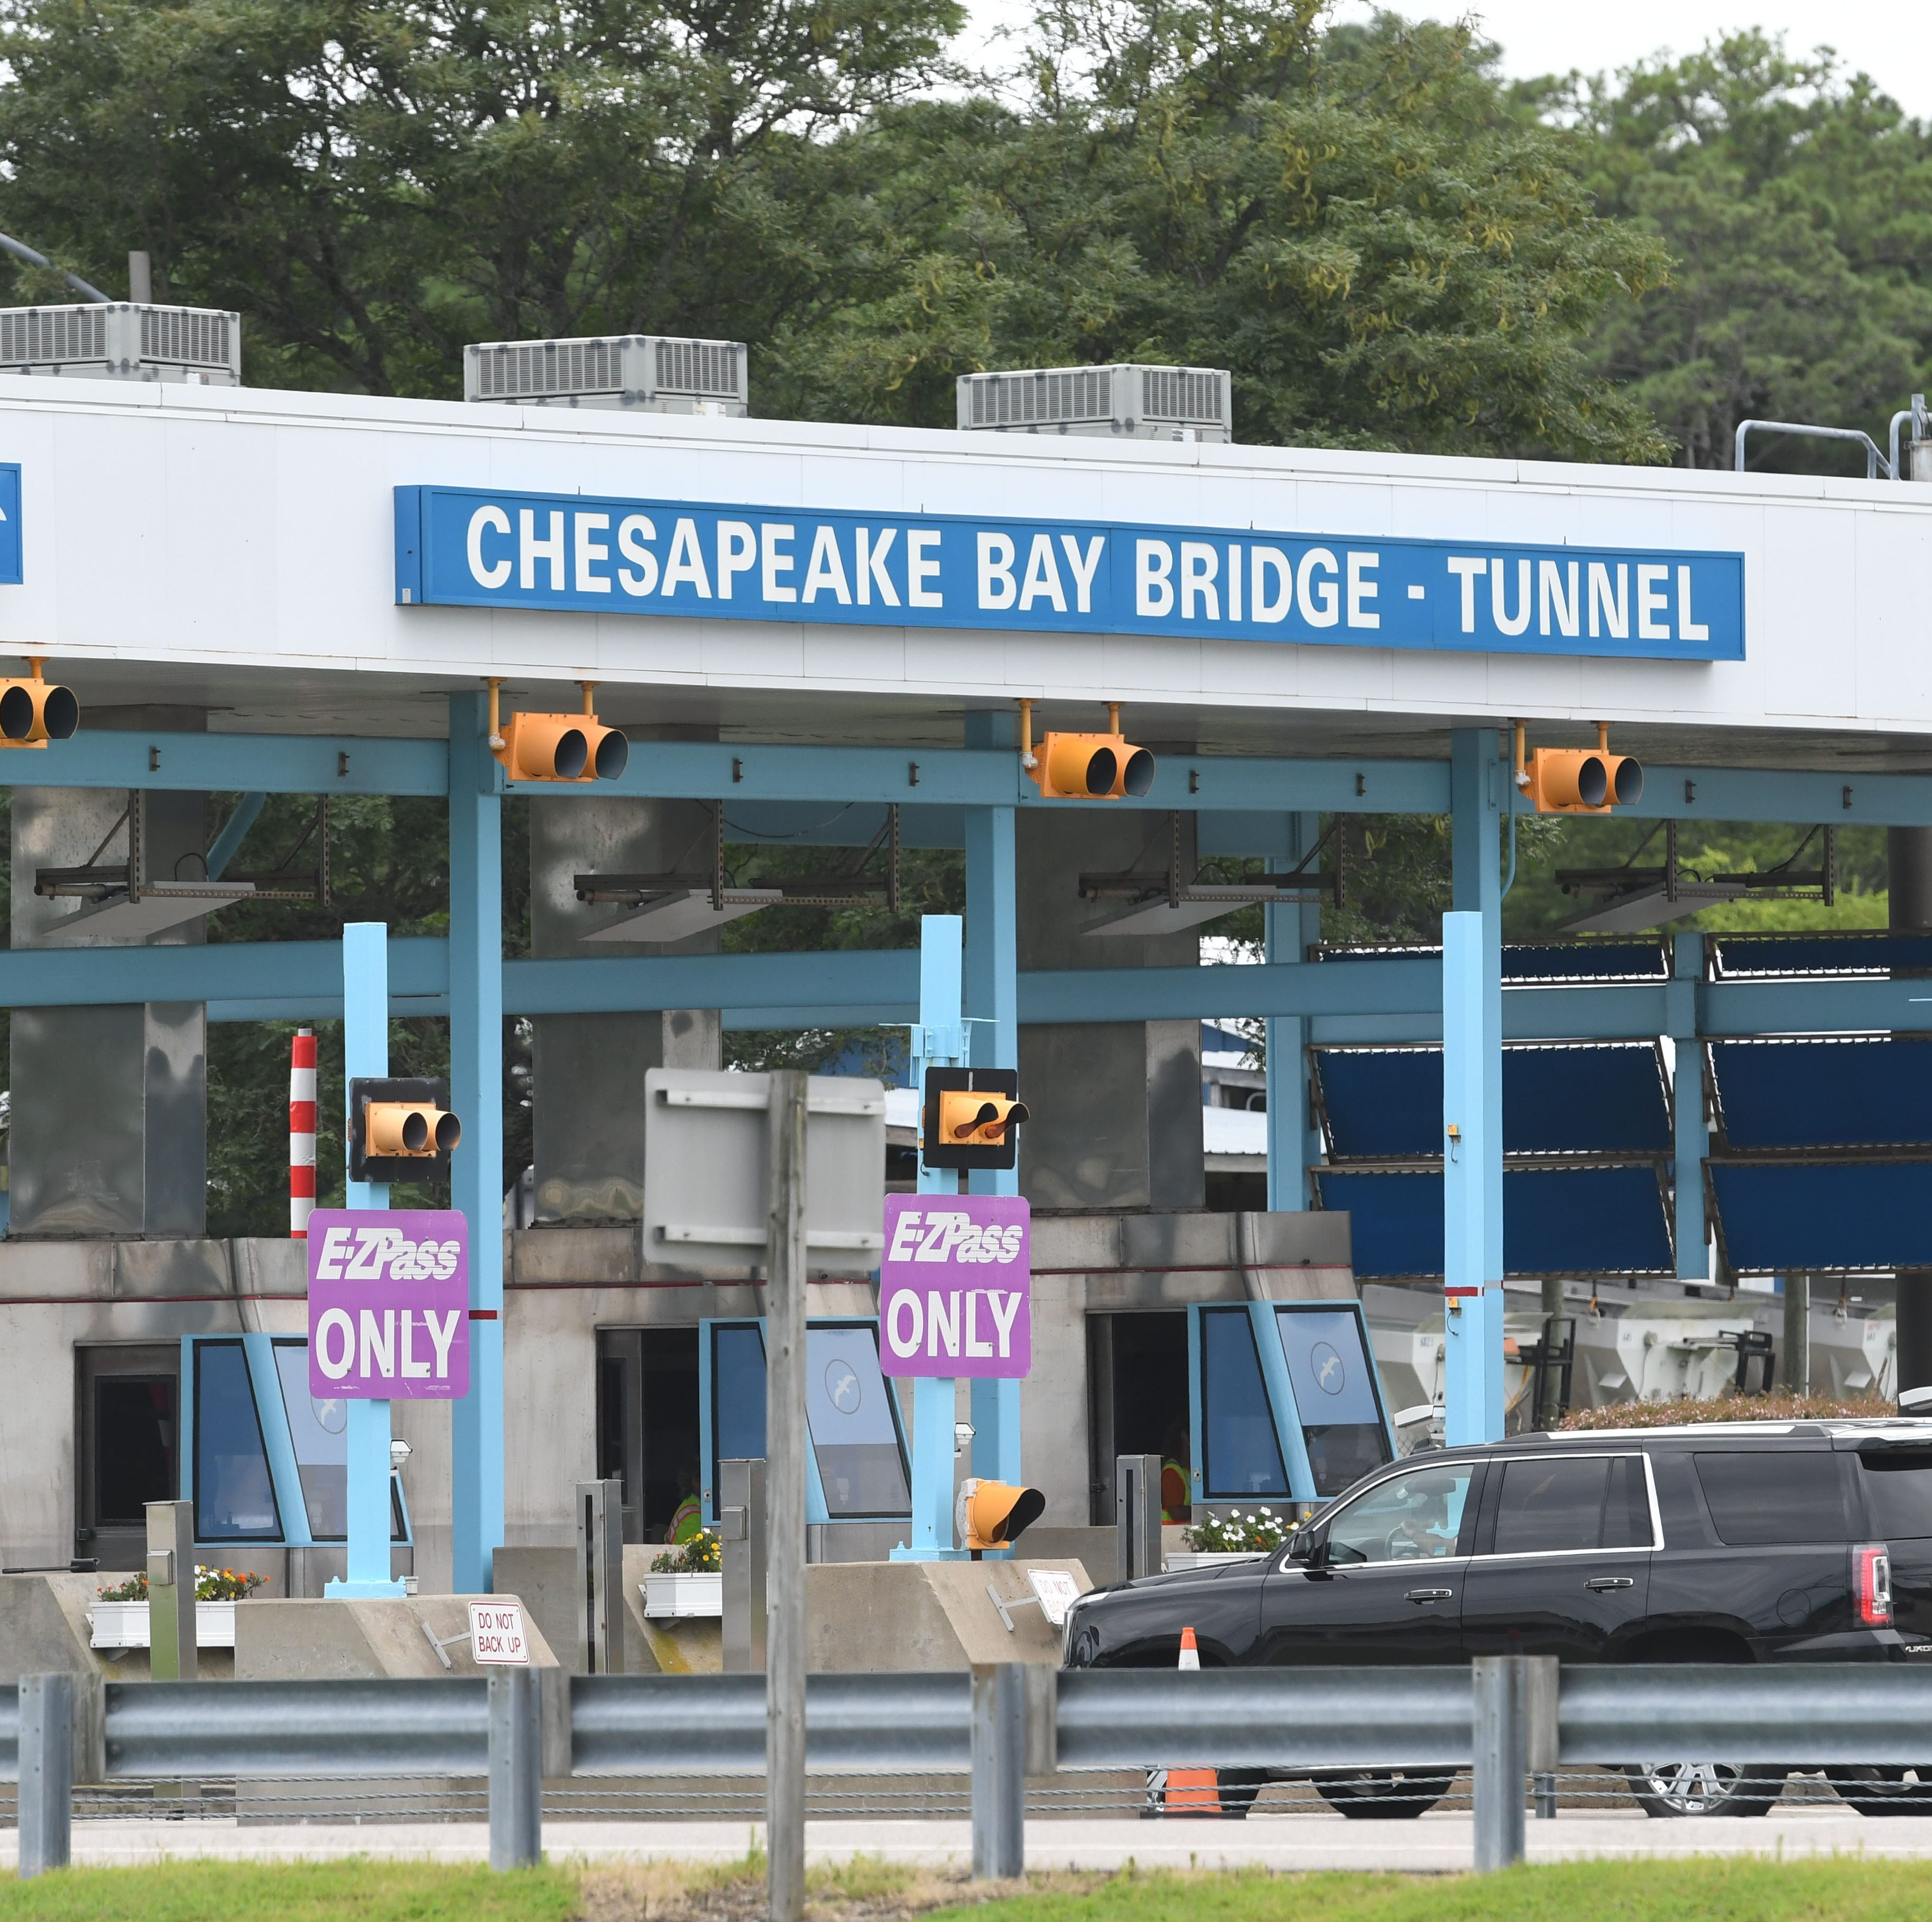 Chesapeake Bay Bridge-Tunnel tour gives up-close look at project